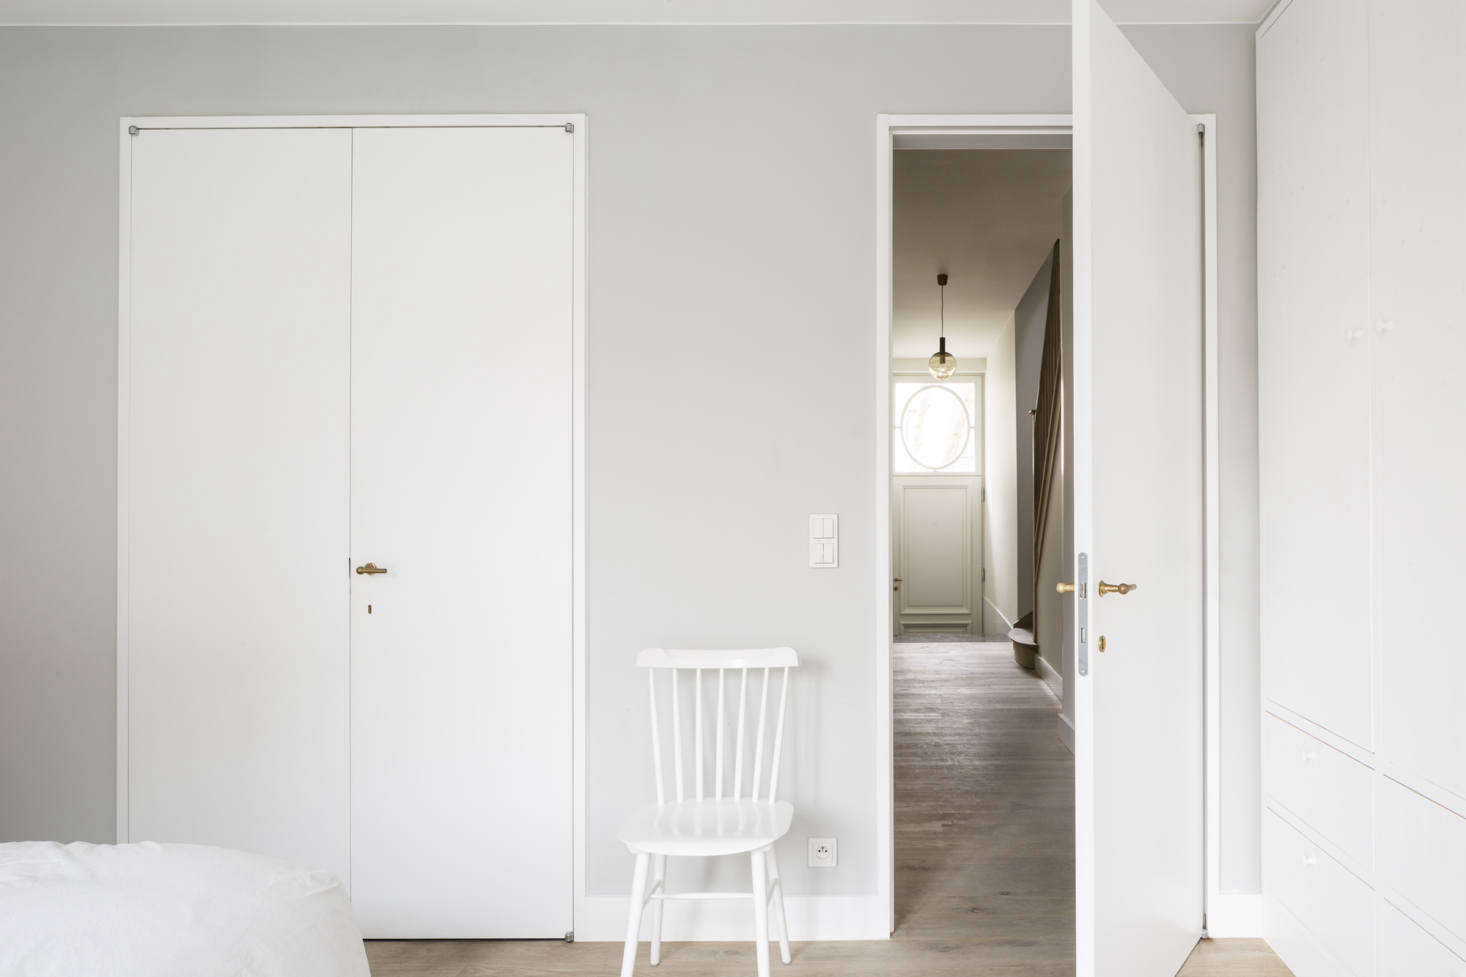 On the ground floor, one flight down, is the master bedroom, set back from the street for maximum privacy. It's painted in a pale gray, with subtle brass hardware from family-owned Belgian company Jaro Style, which the architects used throughout, and a white ladder-back chair from Dille & Kamille.